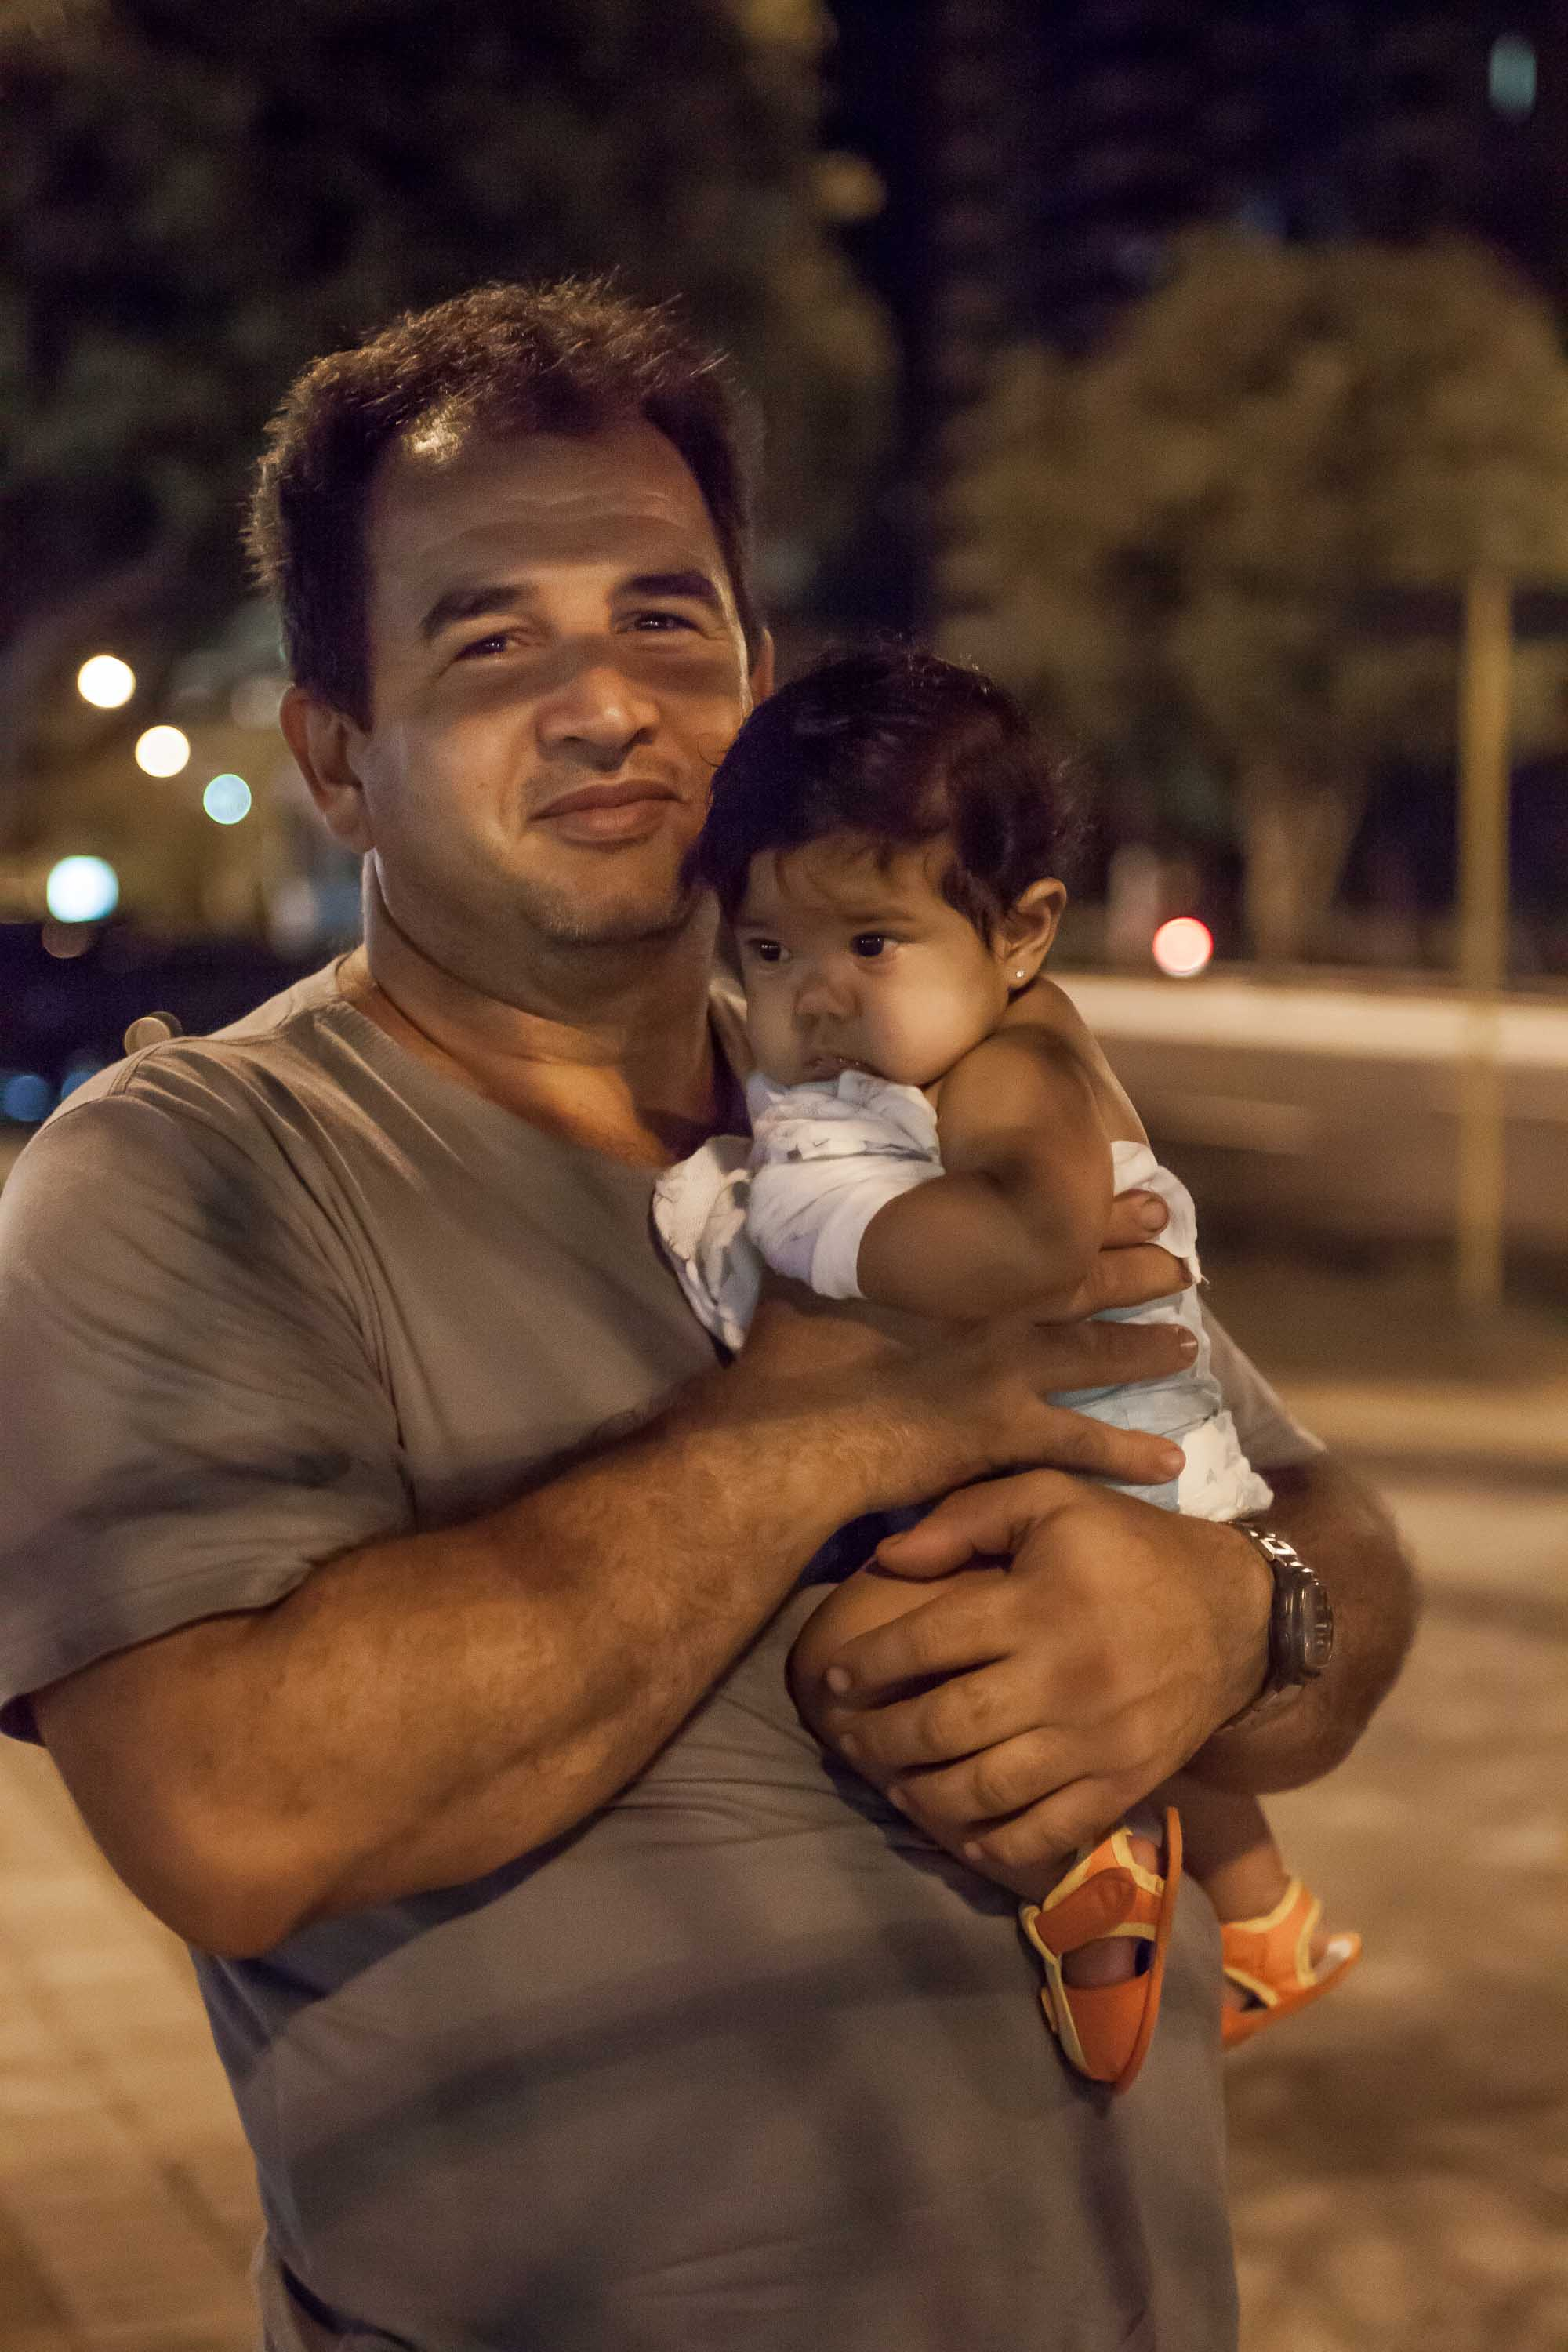 man with child Manaus Amazonias Brazil